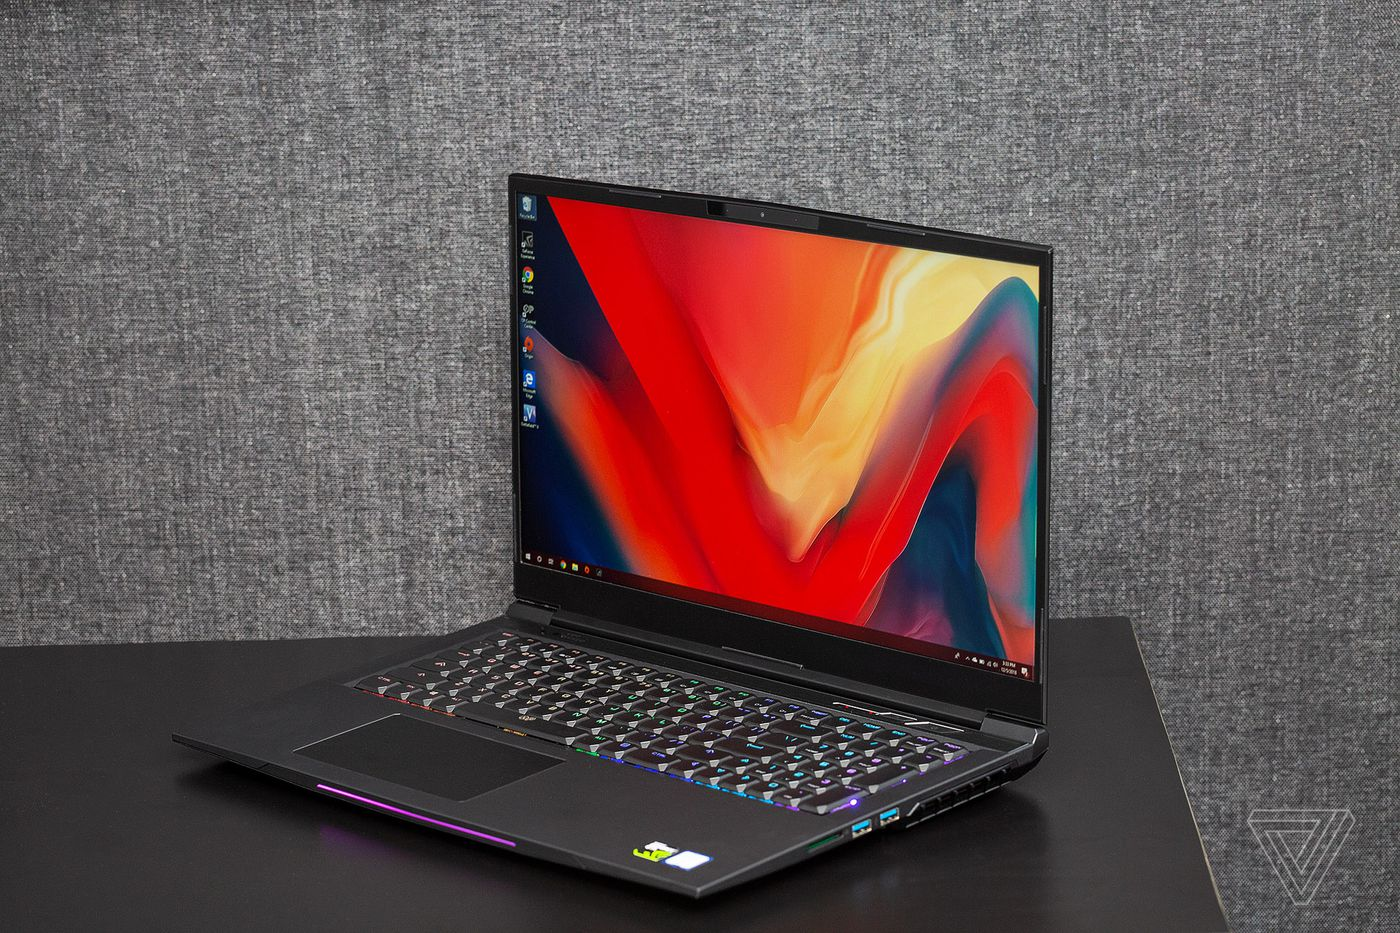 Walmart Overpowered 17+ laptop review: underwhelming - The Verge